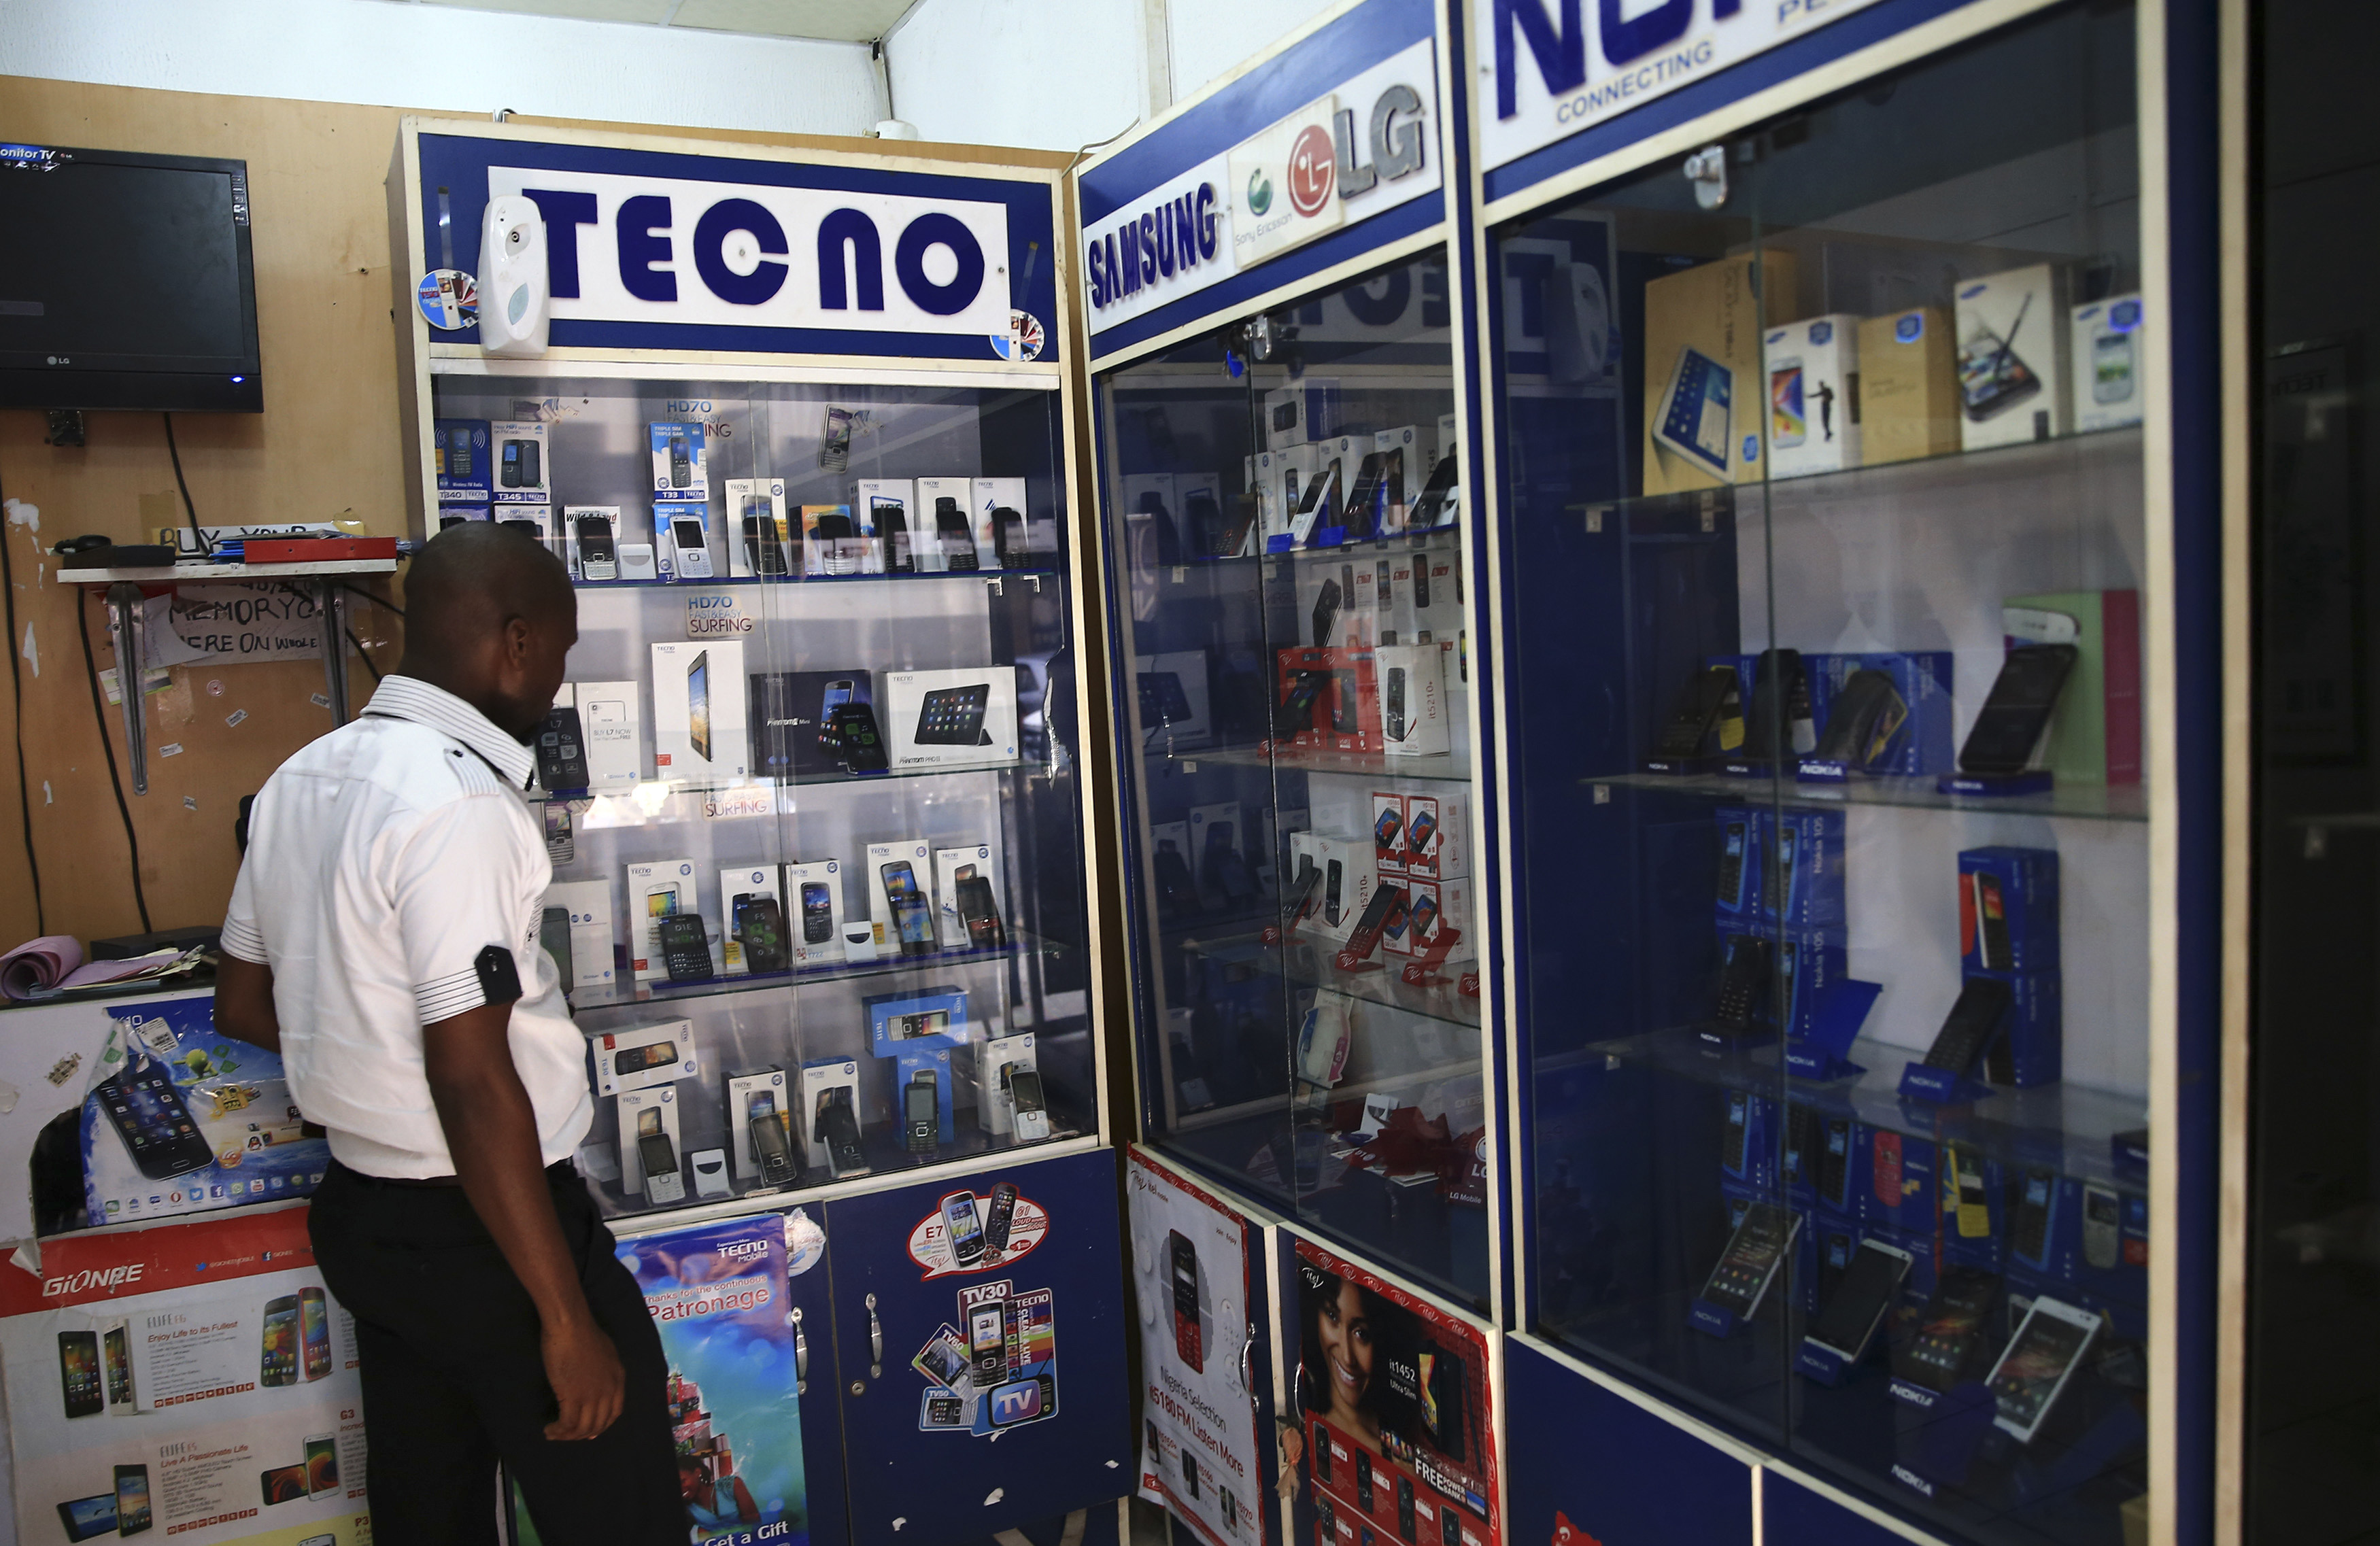 A man looks at smartphones on display at a shop at Wuse II business district in Abuja December 9, 2014. Nigeria is suffering from a plummeting currency, steep budget cuts, corruption scandals and diving oil prices; yet all this is unlikely to decide a tight race for the presidency. When the central bank devalued the naira last month to save foreign reserves, the impact was felt instantly on the streets. Nigeria imports 80 percent of what it consumes. Picture taken December 9, 2014.    REUTERS/Afolabi Sotunde  (NIGERIA - Tags: BUSINESS POLITICS) - GM1EACF16MS01